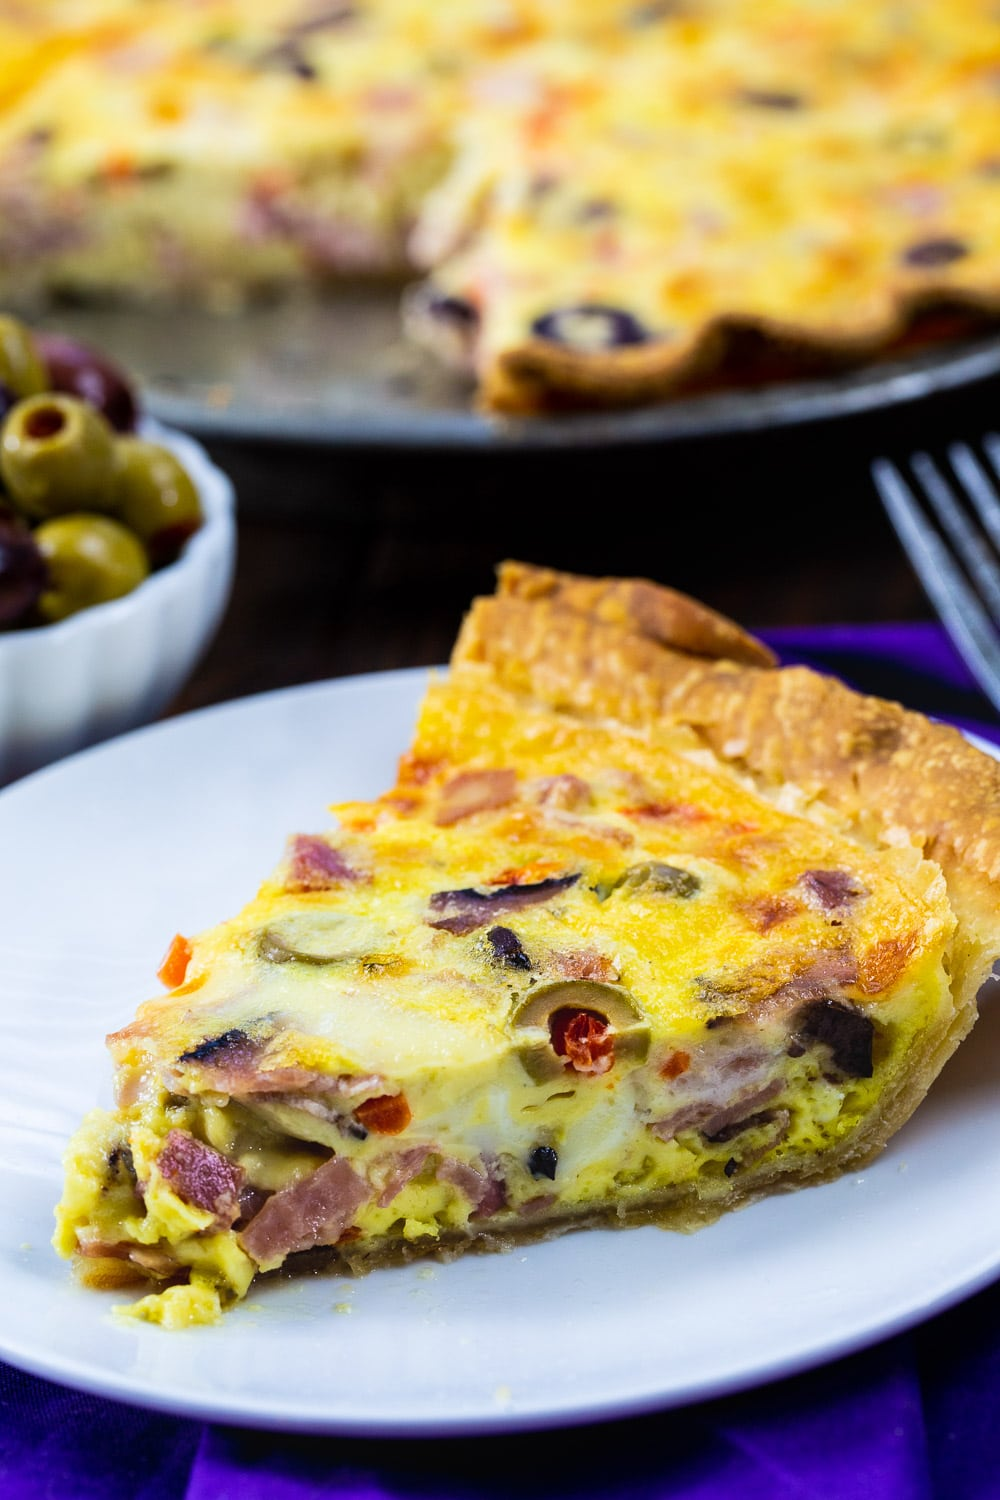 Slice of Muffaletta Quiche on a plate.